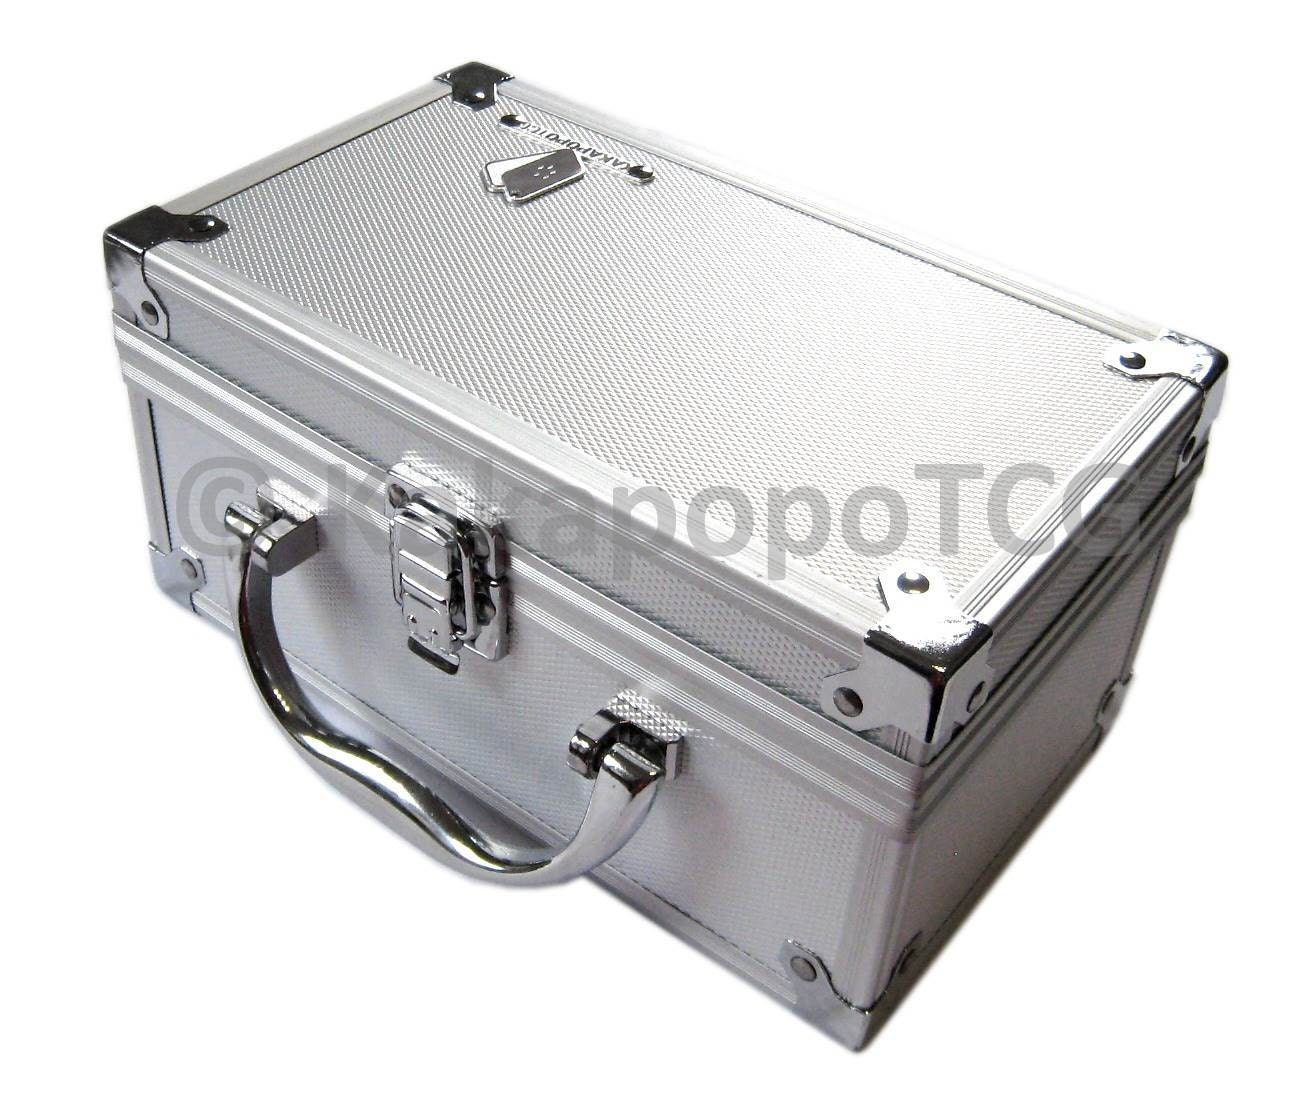 D3 Silver Metal Storage Case Deck Box Top loader Trading Cards MTG Magic the Gathering YGO Yugioh Pokemon Vanguard EDH Commander Carry